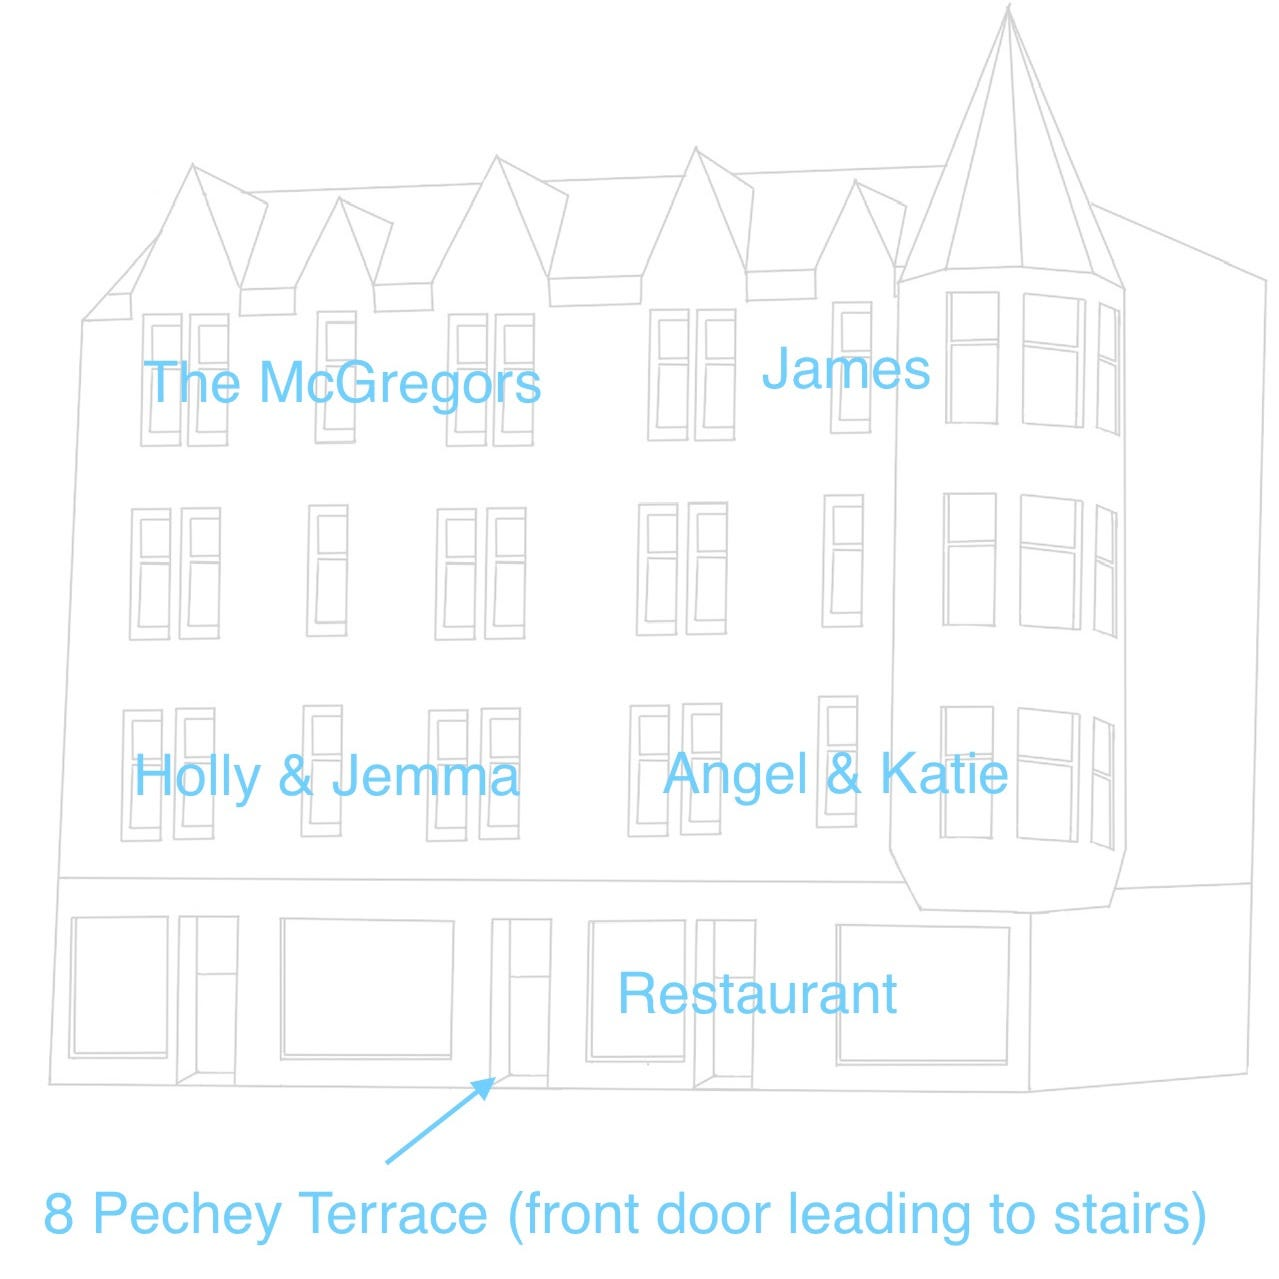 An outline drawing of a tenement building, with text showing where each character lives